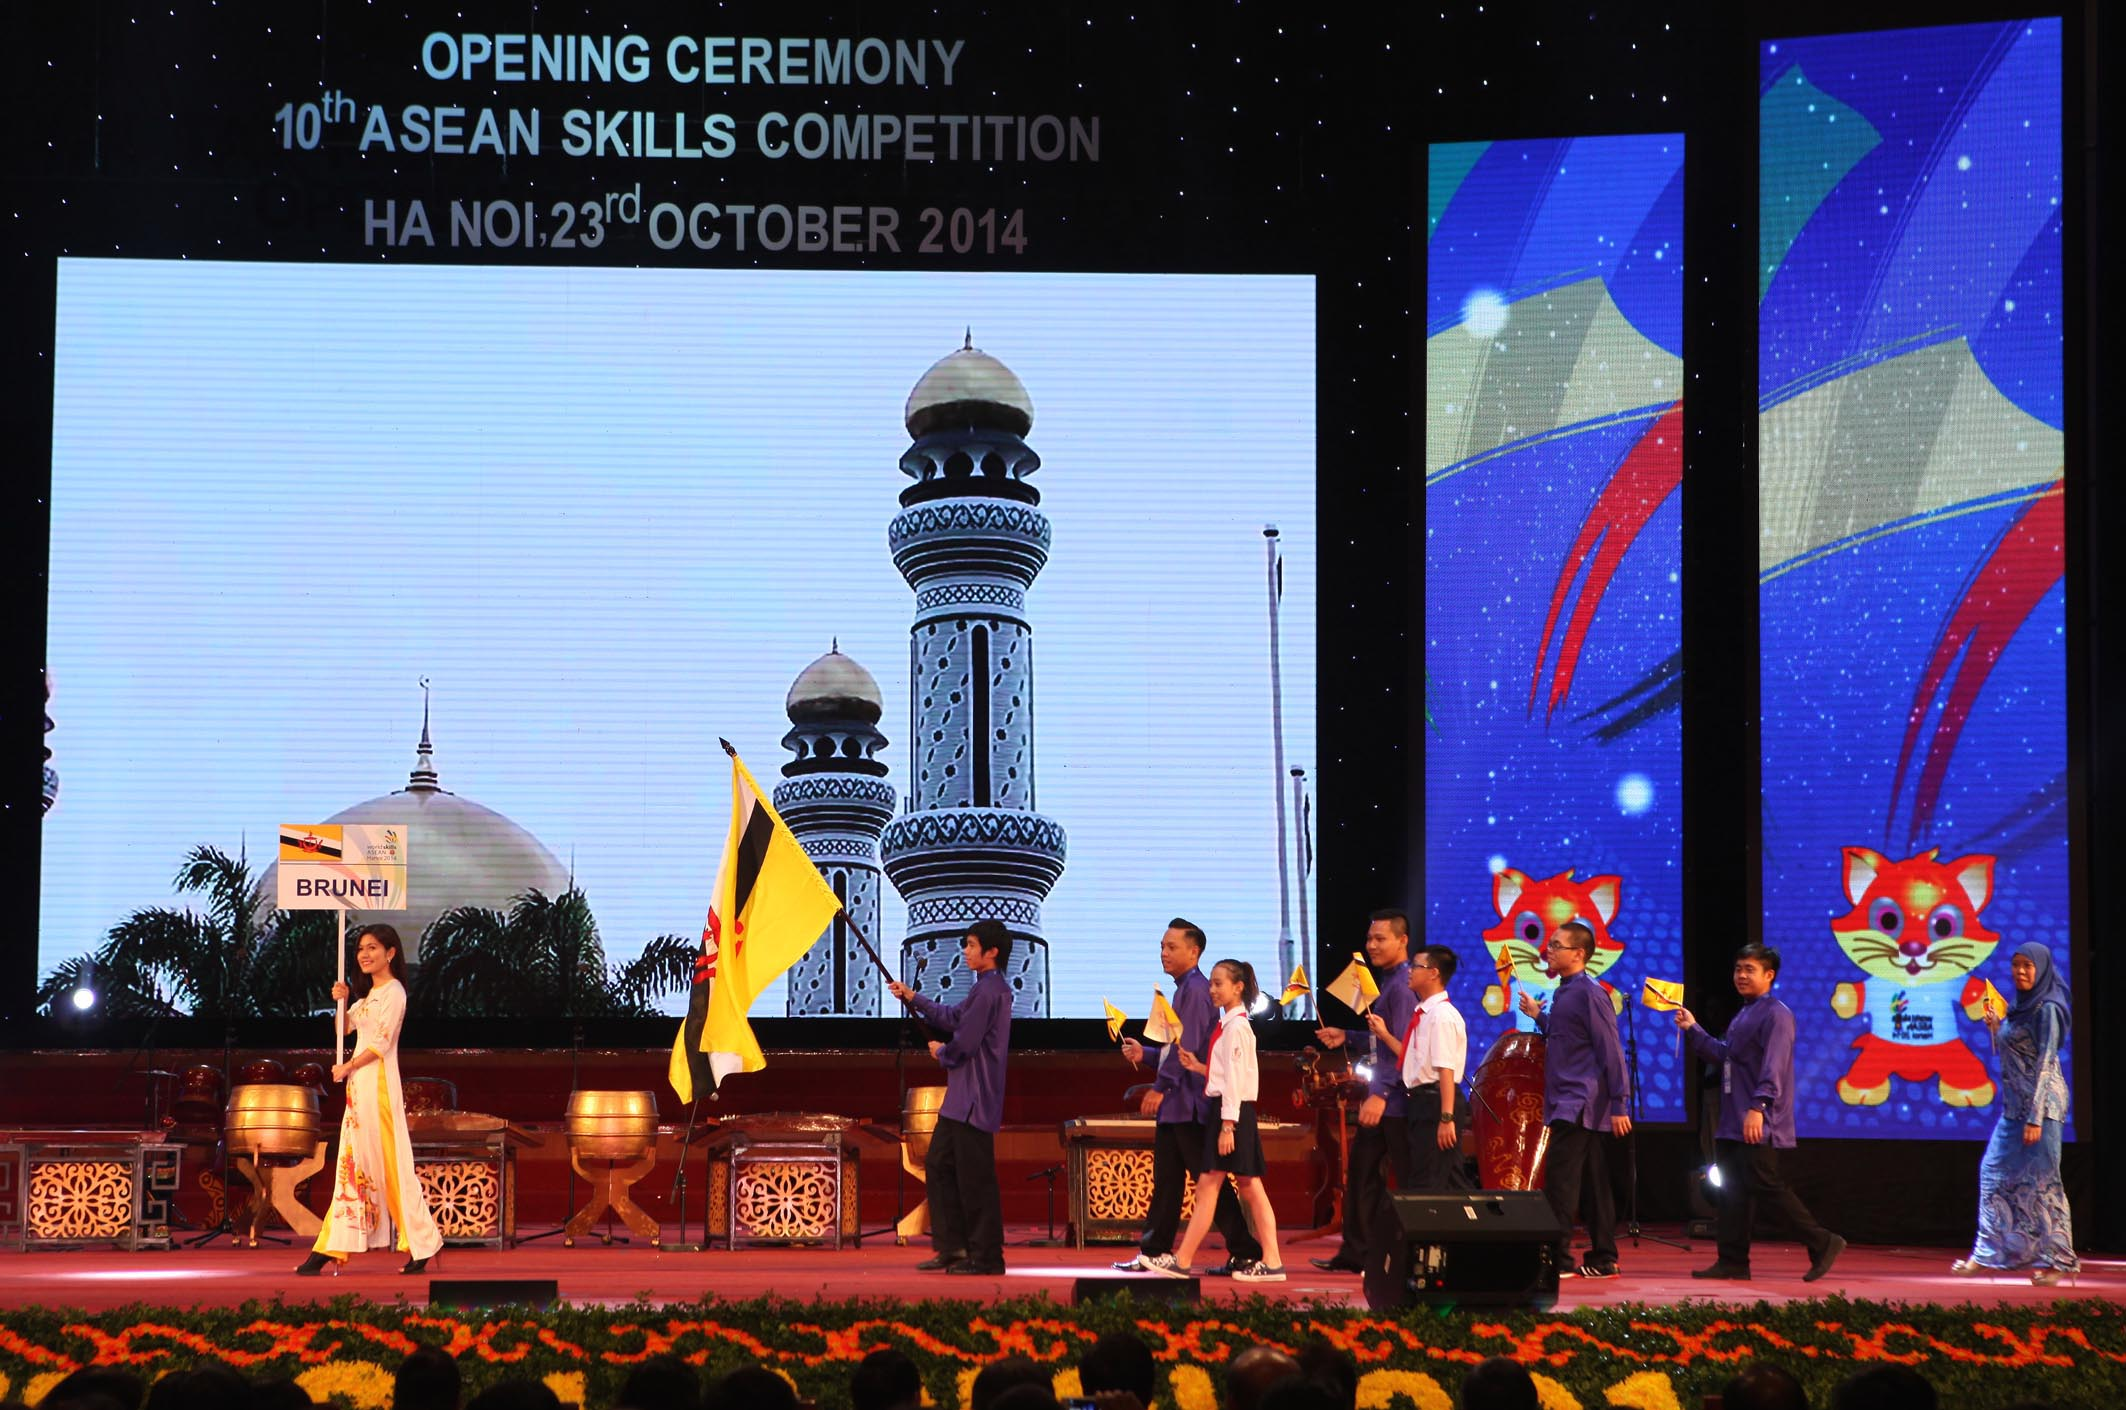 Brunei's delegation parades into stage